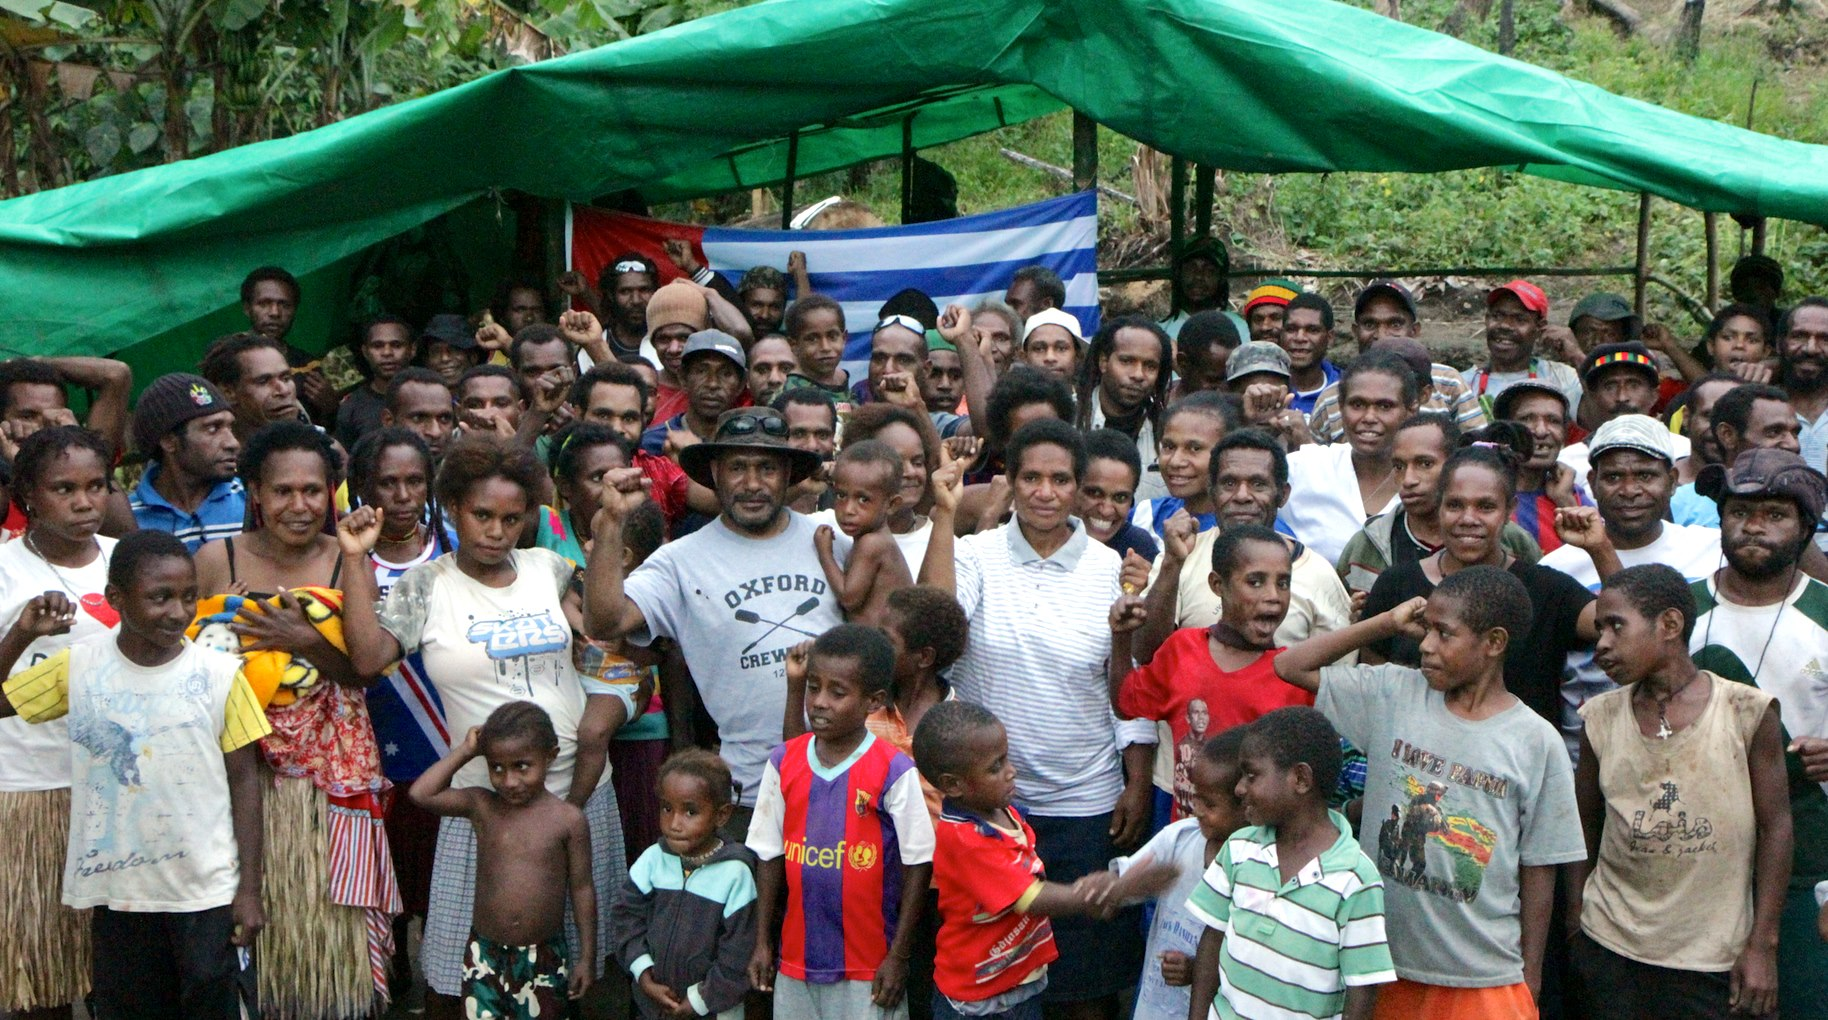 Benny Wenda with West Papuan refugees near Vanimo in 2013